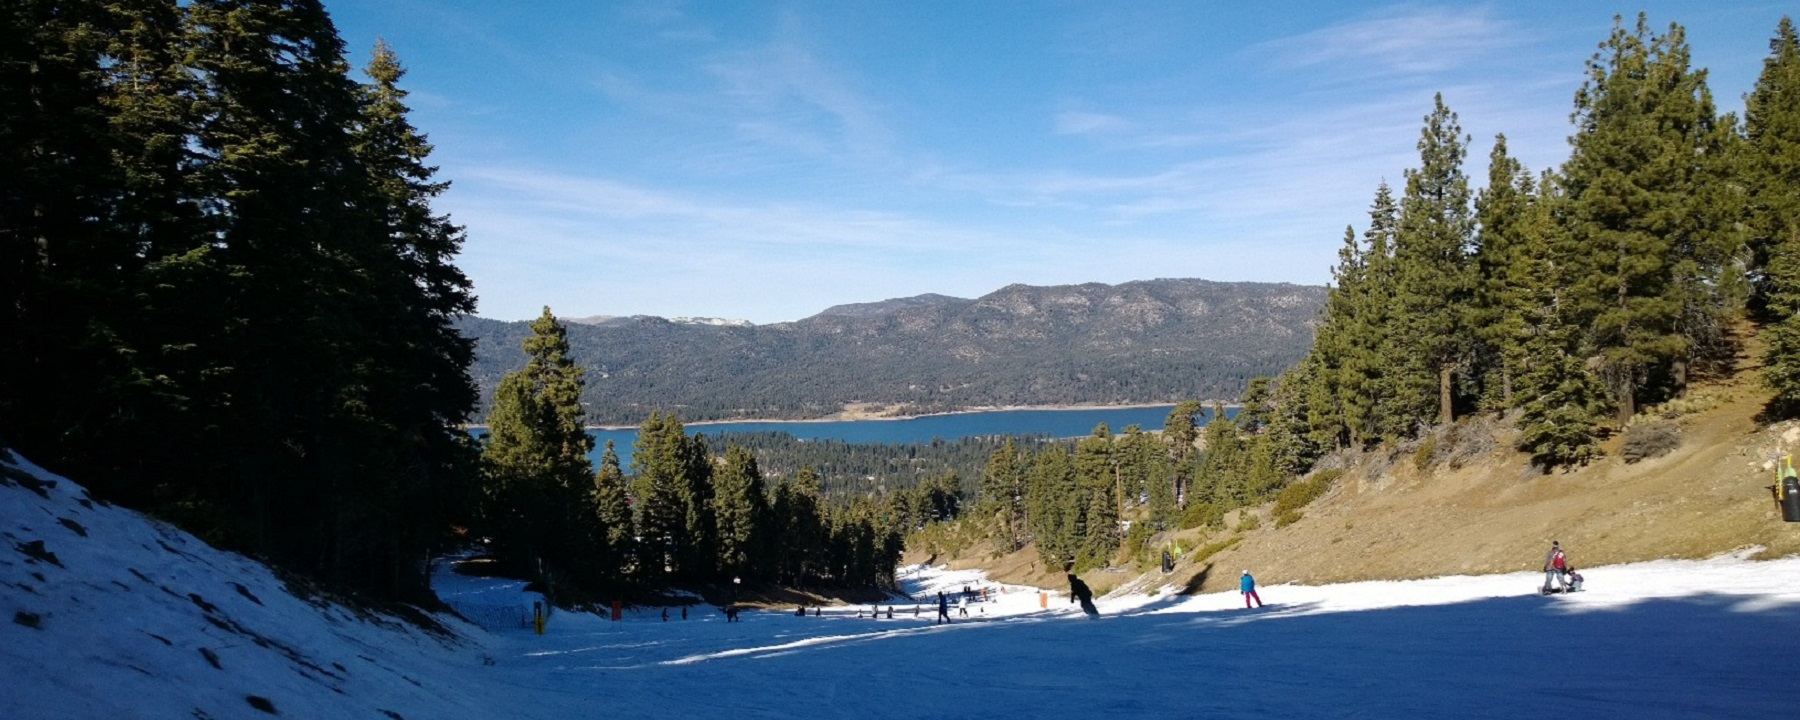 big bear snowboarding weekend